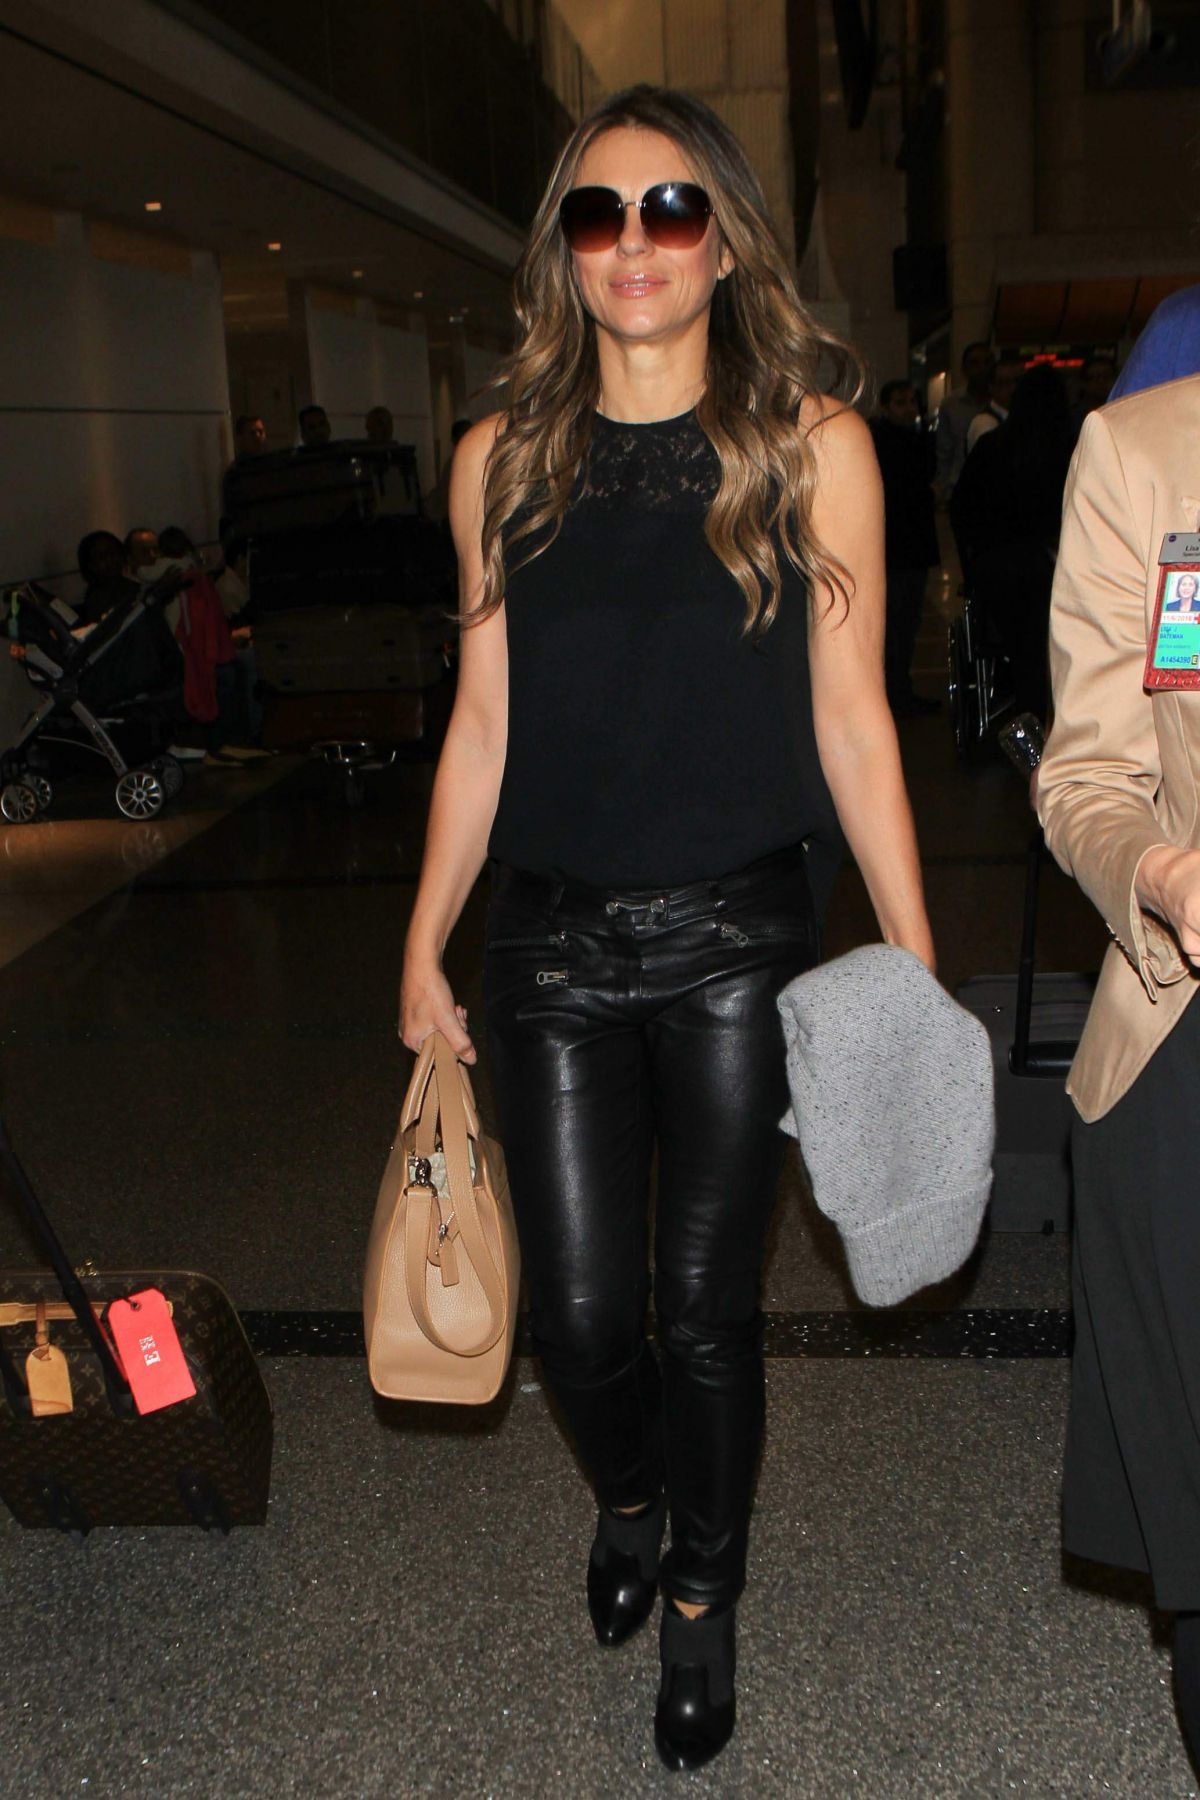 ELIZABETH HURLEY at Los Angeles International Airport 11/17/2015